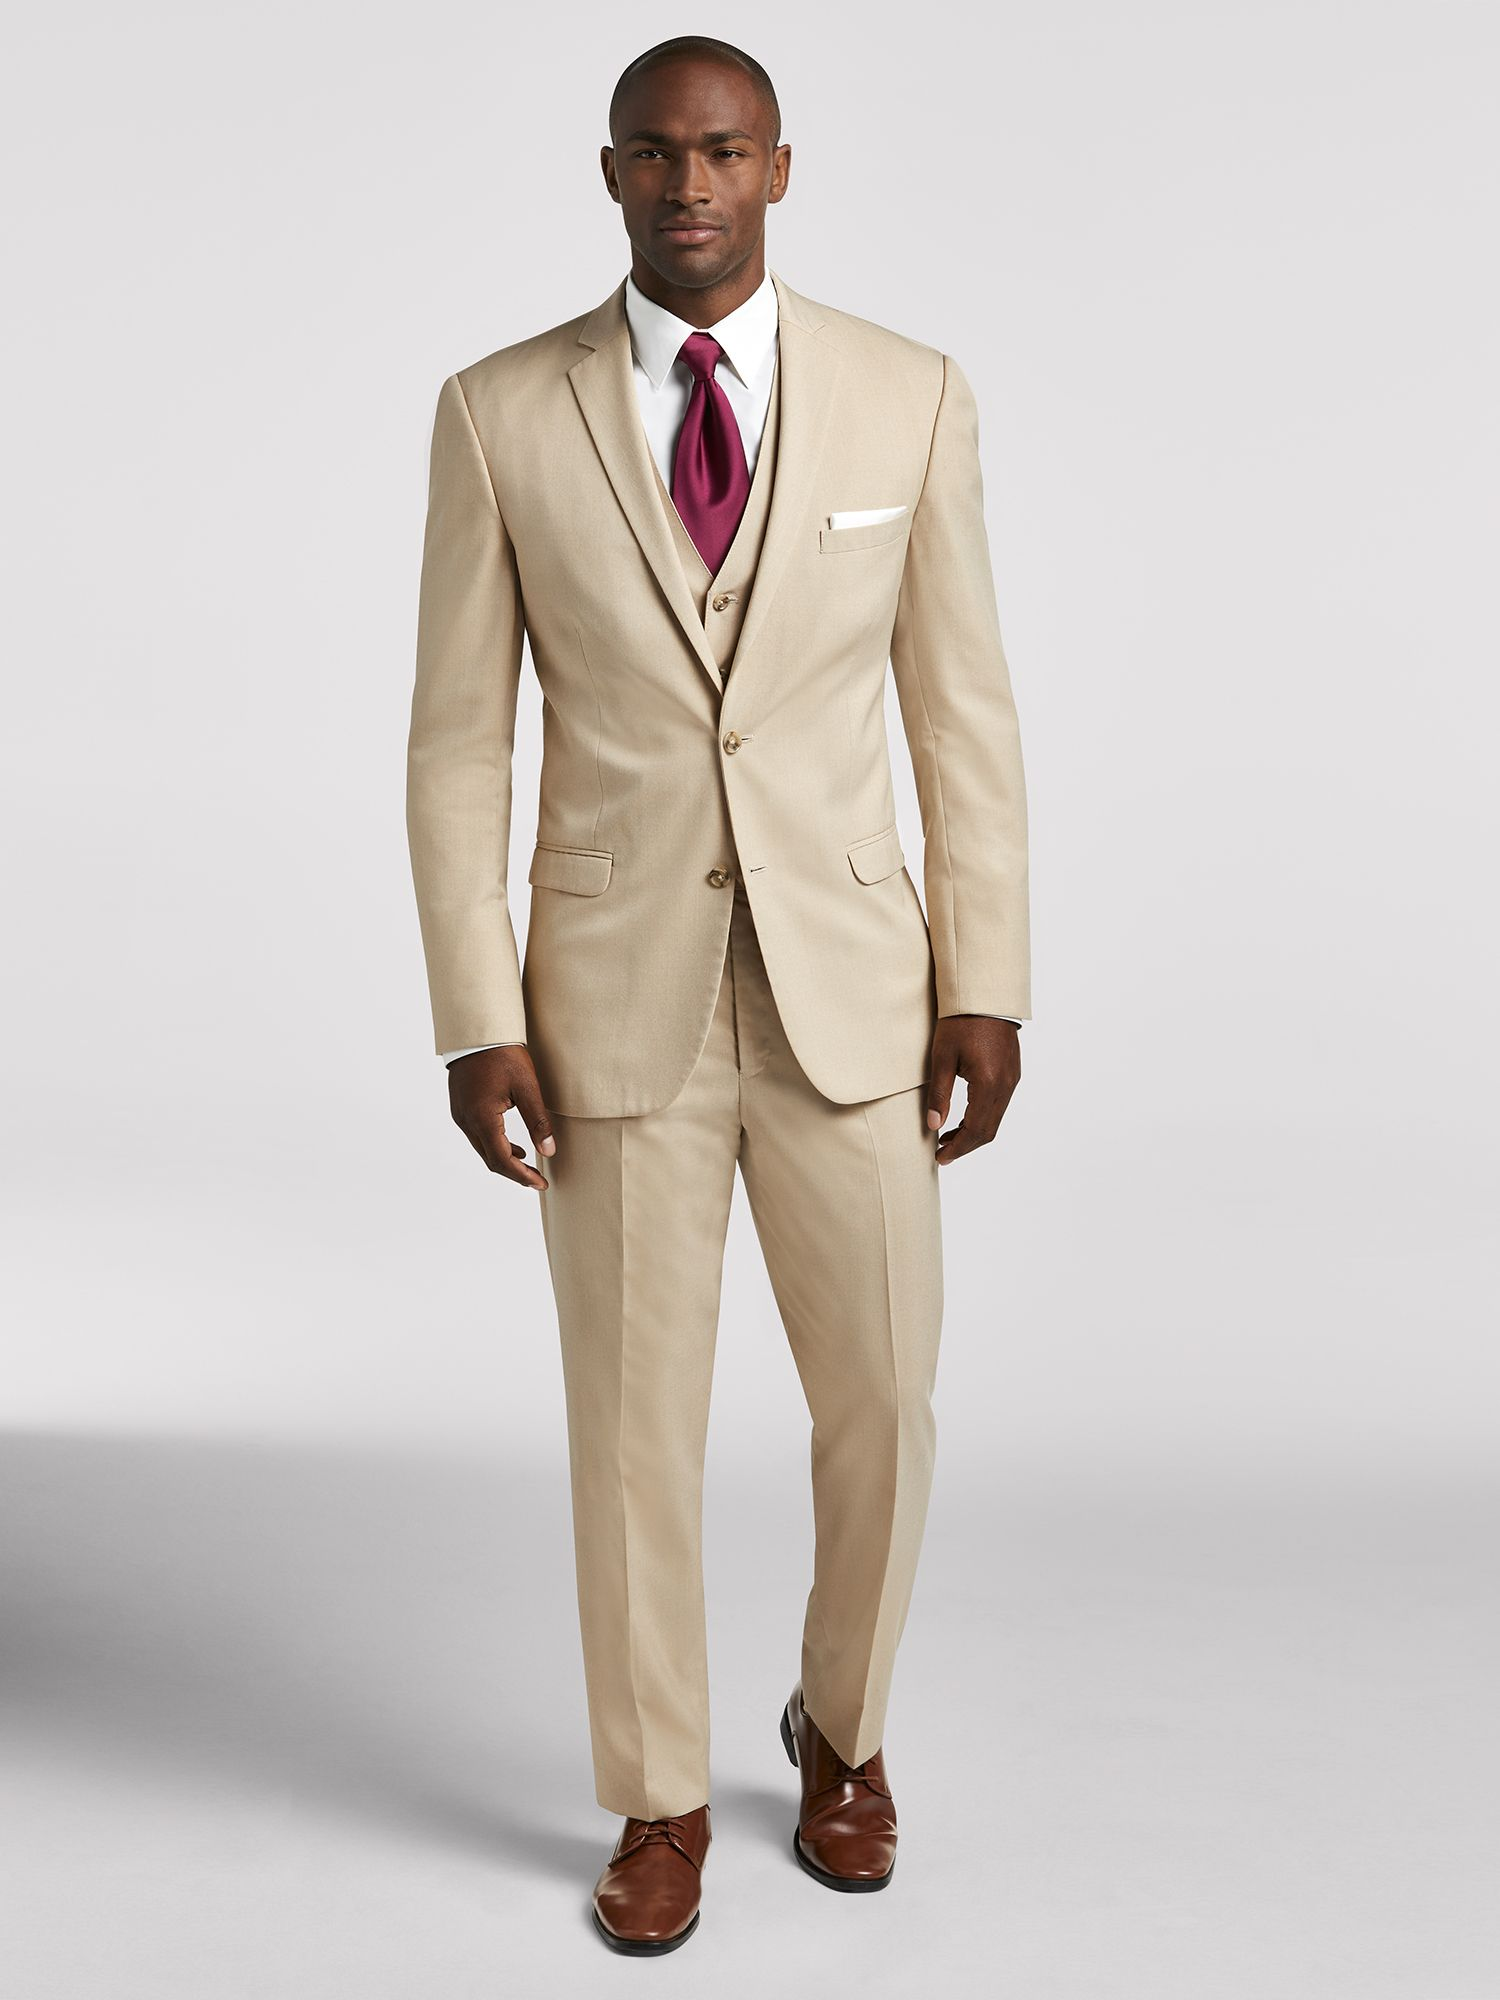 Vintage Tan Ivory Suit by Pronto Uomo  Suit Rental  Mens Wearhouse